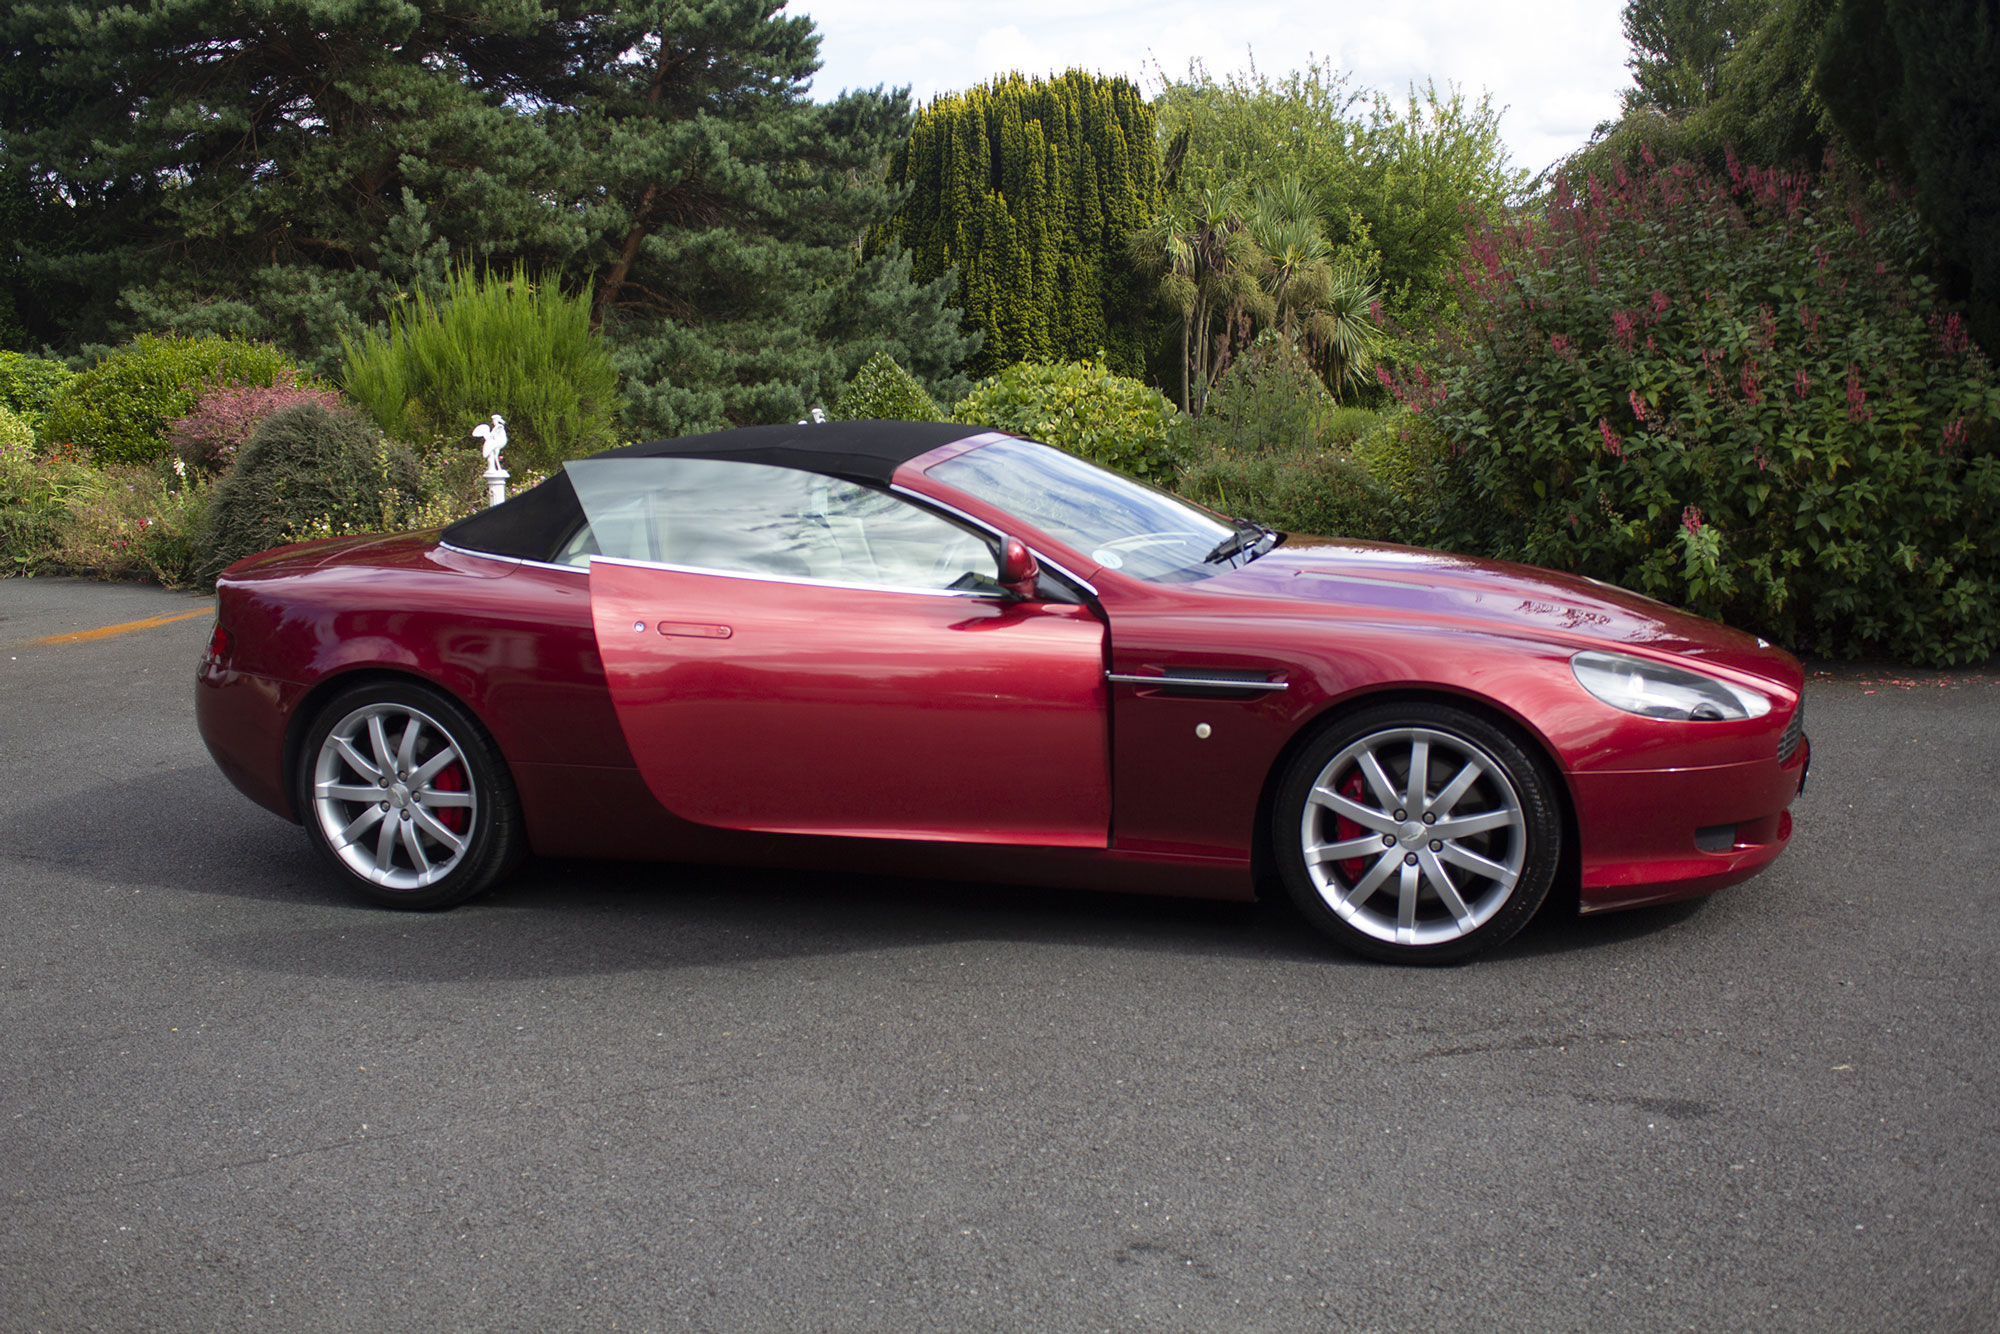 Aston Martin DB9 Convertible in Wine